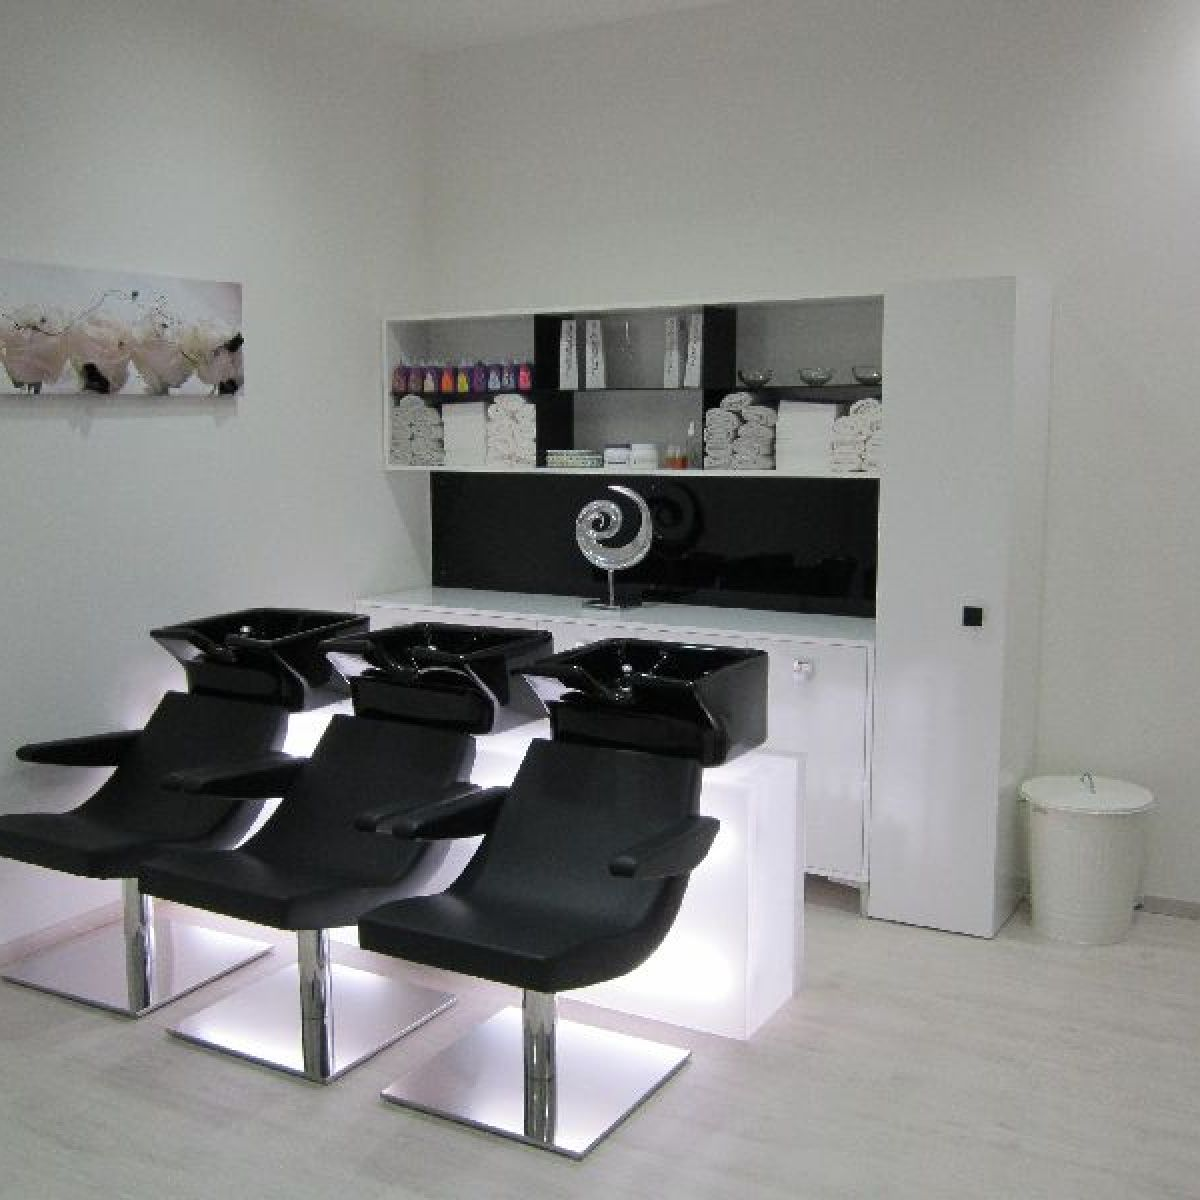 Nelson mobilier fabricant mobilier de coiffure made in for Mobilier salon